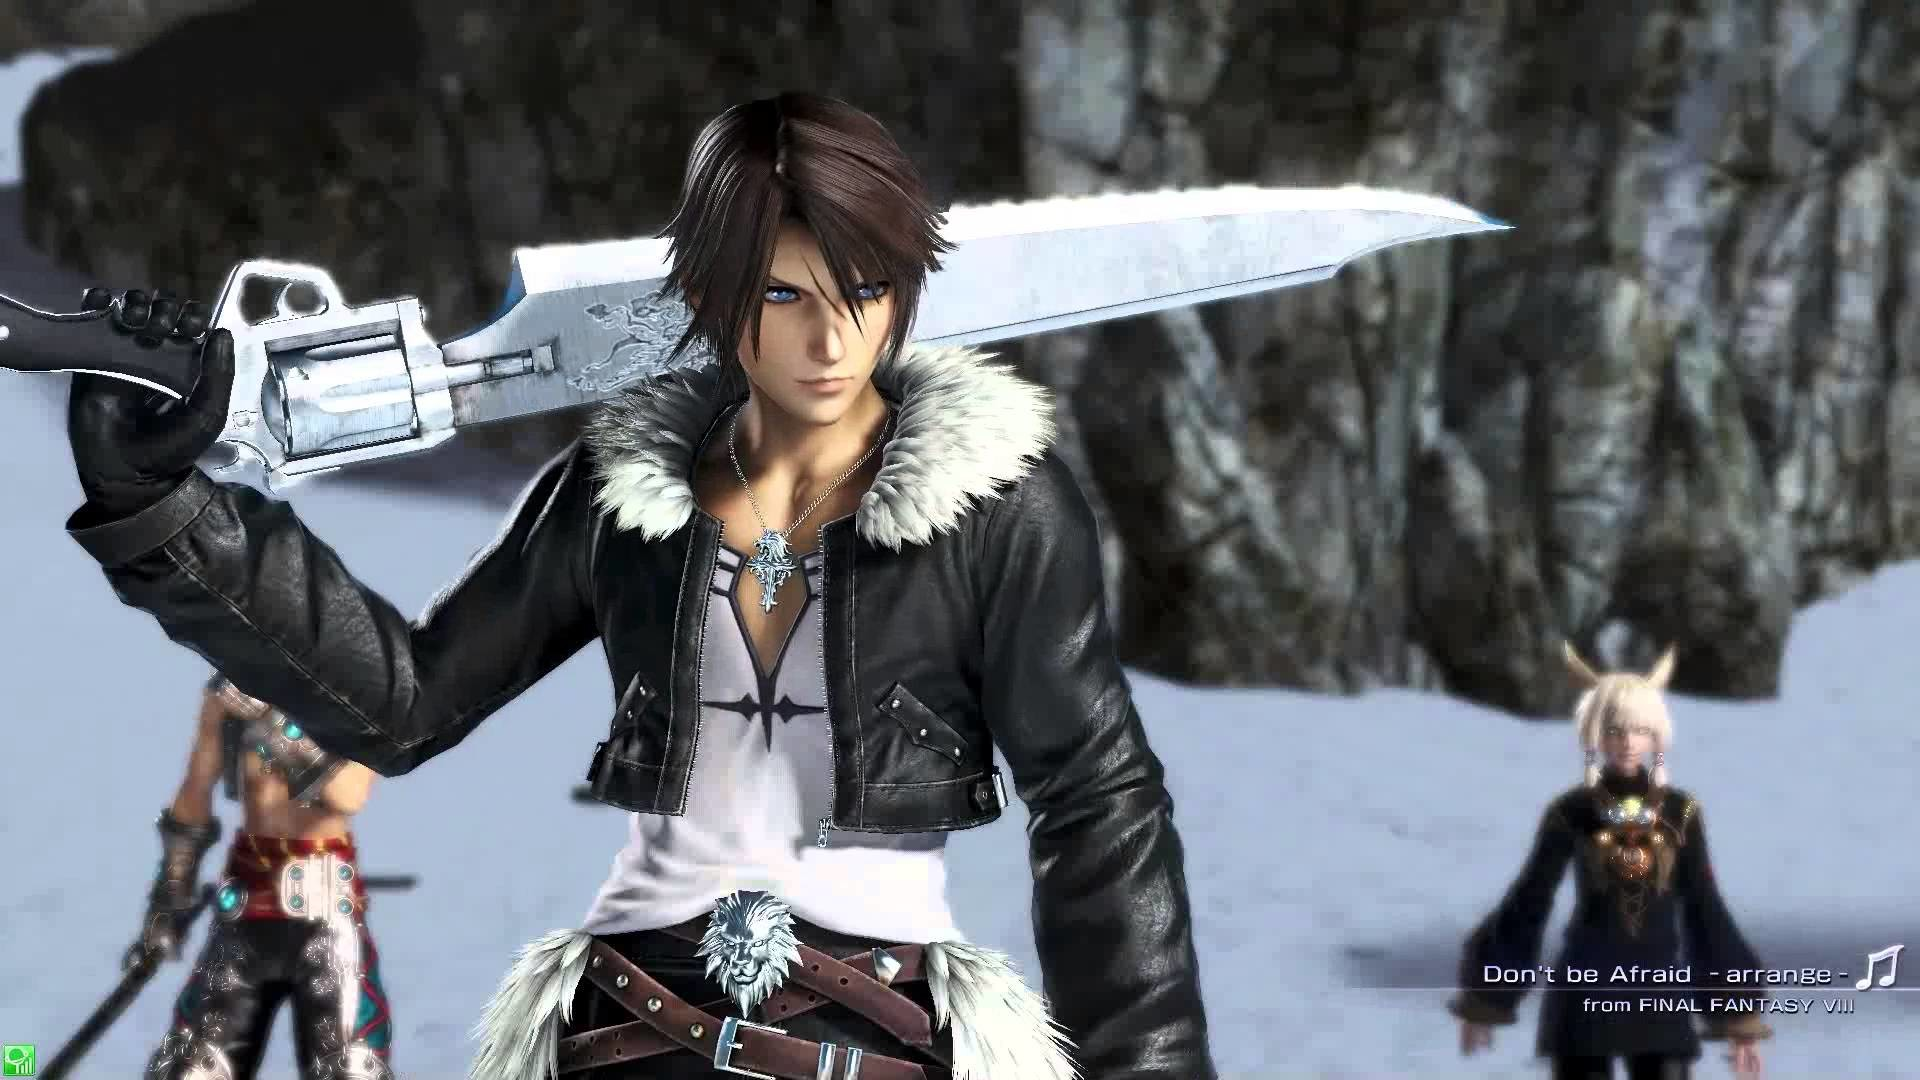 The image for squall dissidia nt